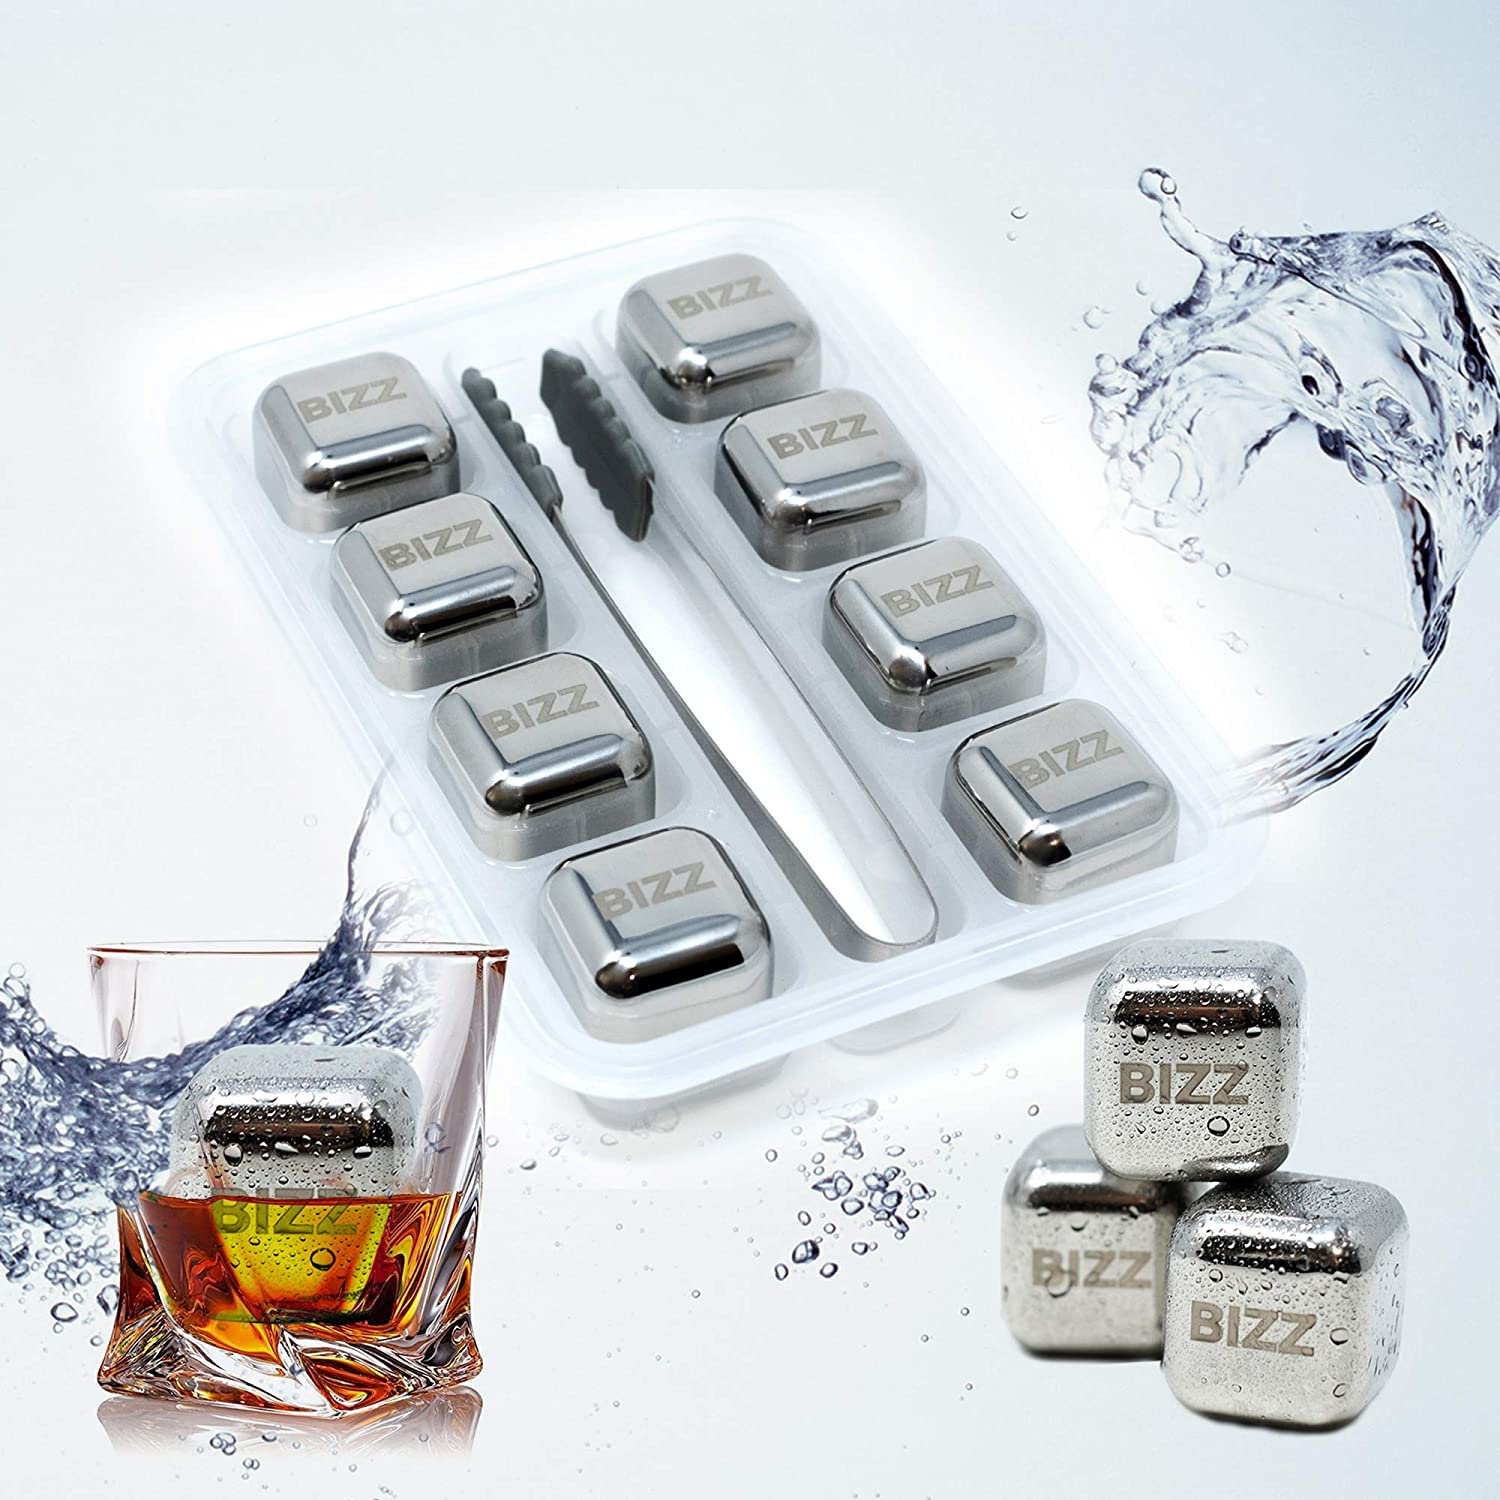 Bizz Whiskey Stones Set (8-Piece Set) Reusable Ice Cubes, Mini Tongs, Tray | Stainless Steel Cocktail Accessories | Refreezable Chilling Blocks | No More Watered-Down Taste